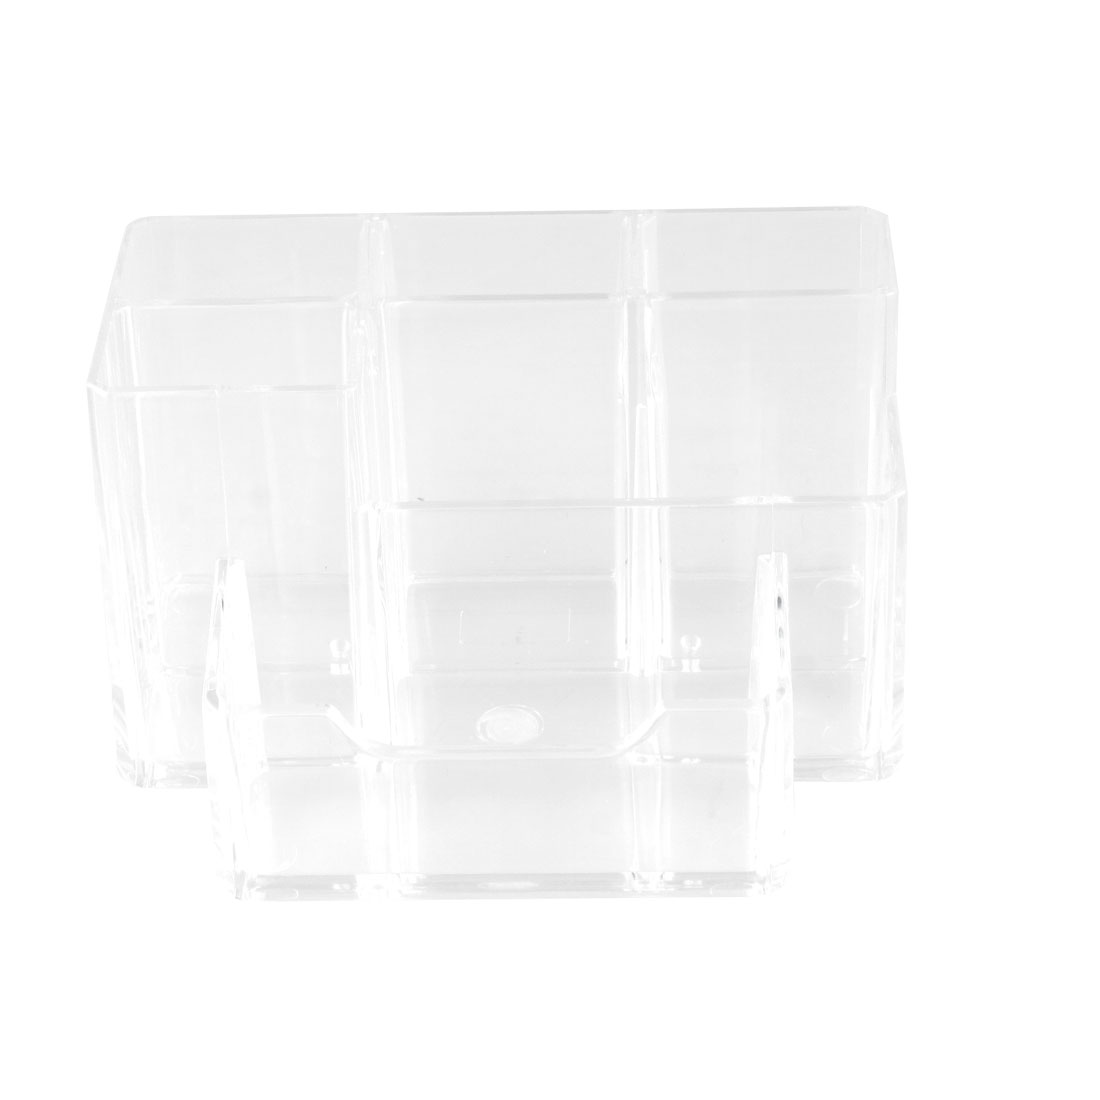 Clear Hard Plastic 6 Sections Muti Function Desk Pen Holder<br><br>Aliexpress